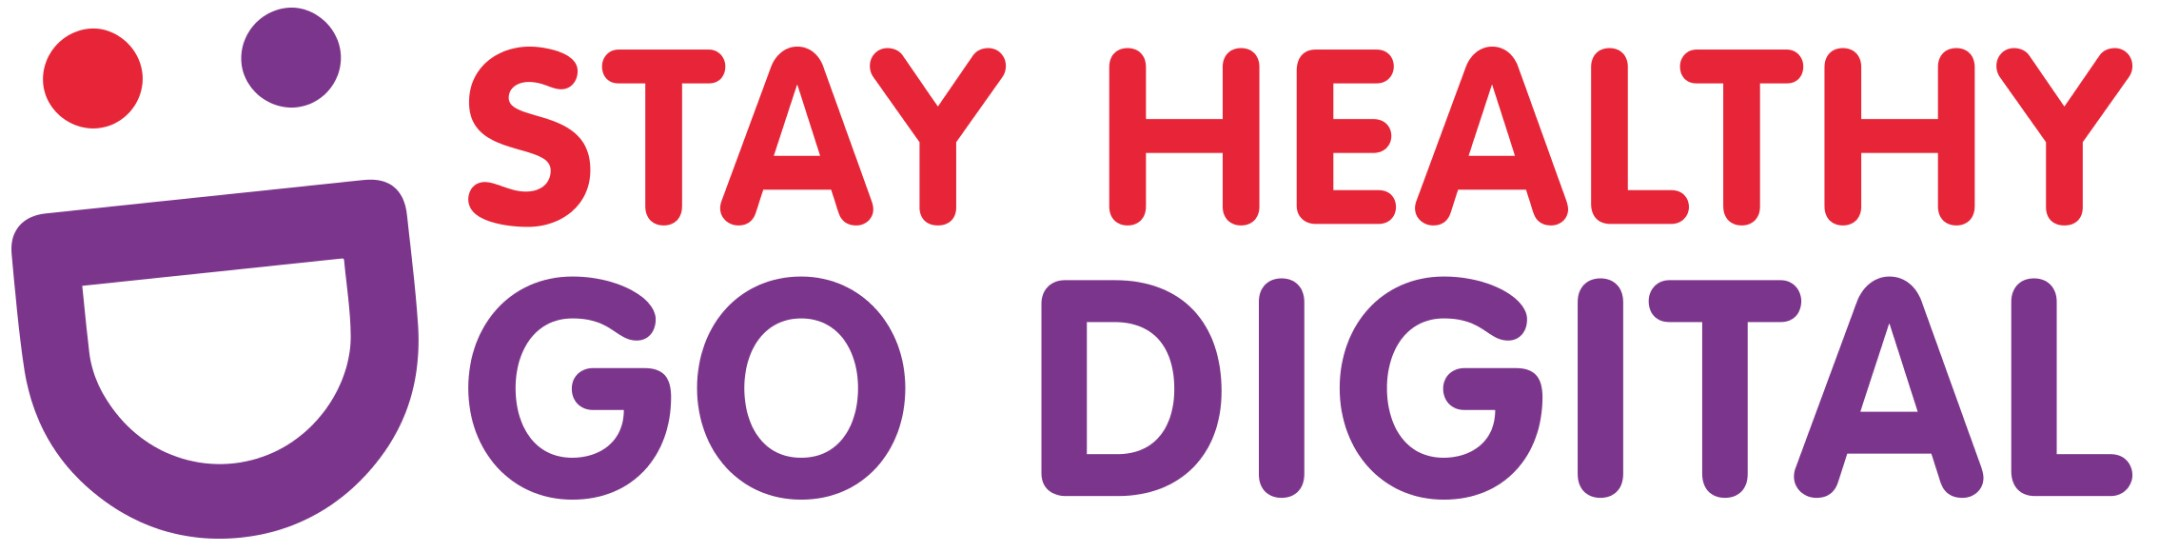 Stay Healthy Go Digital Logo